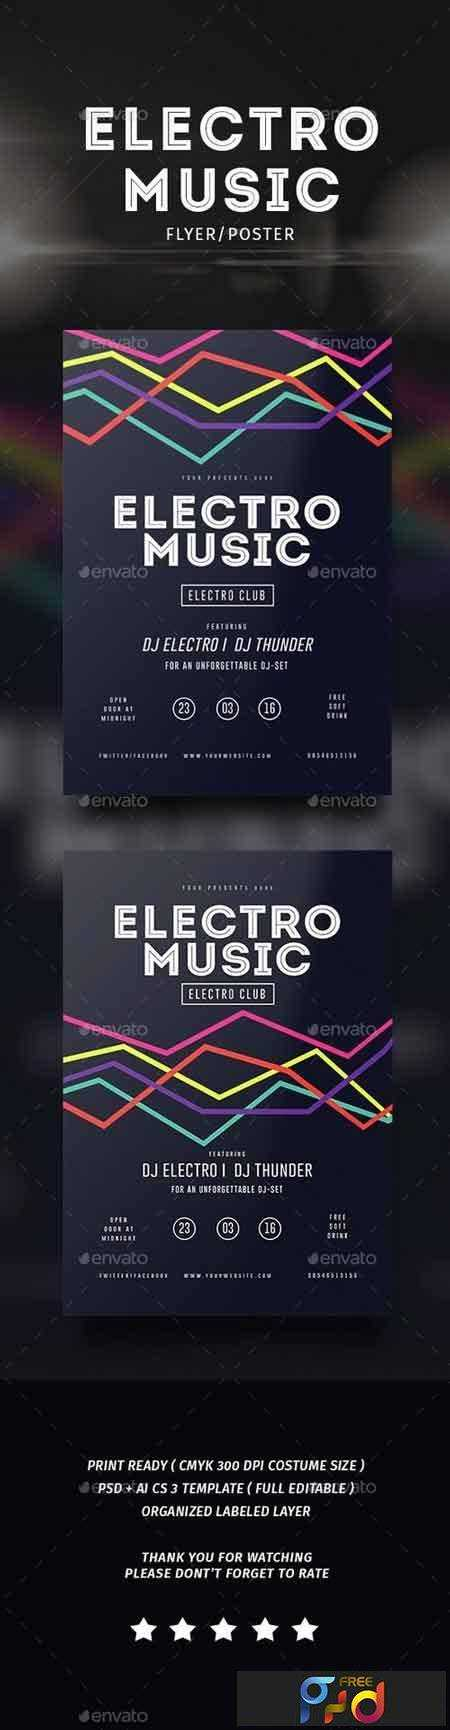 1802056 Electro Musik Flyer & Poster 14526283 1